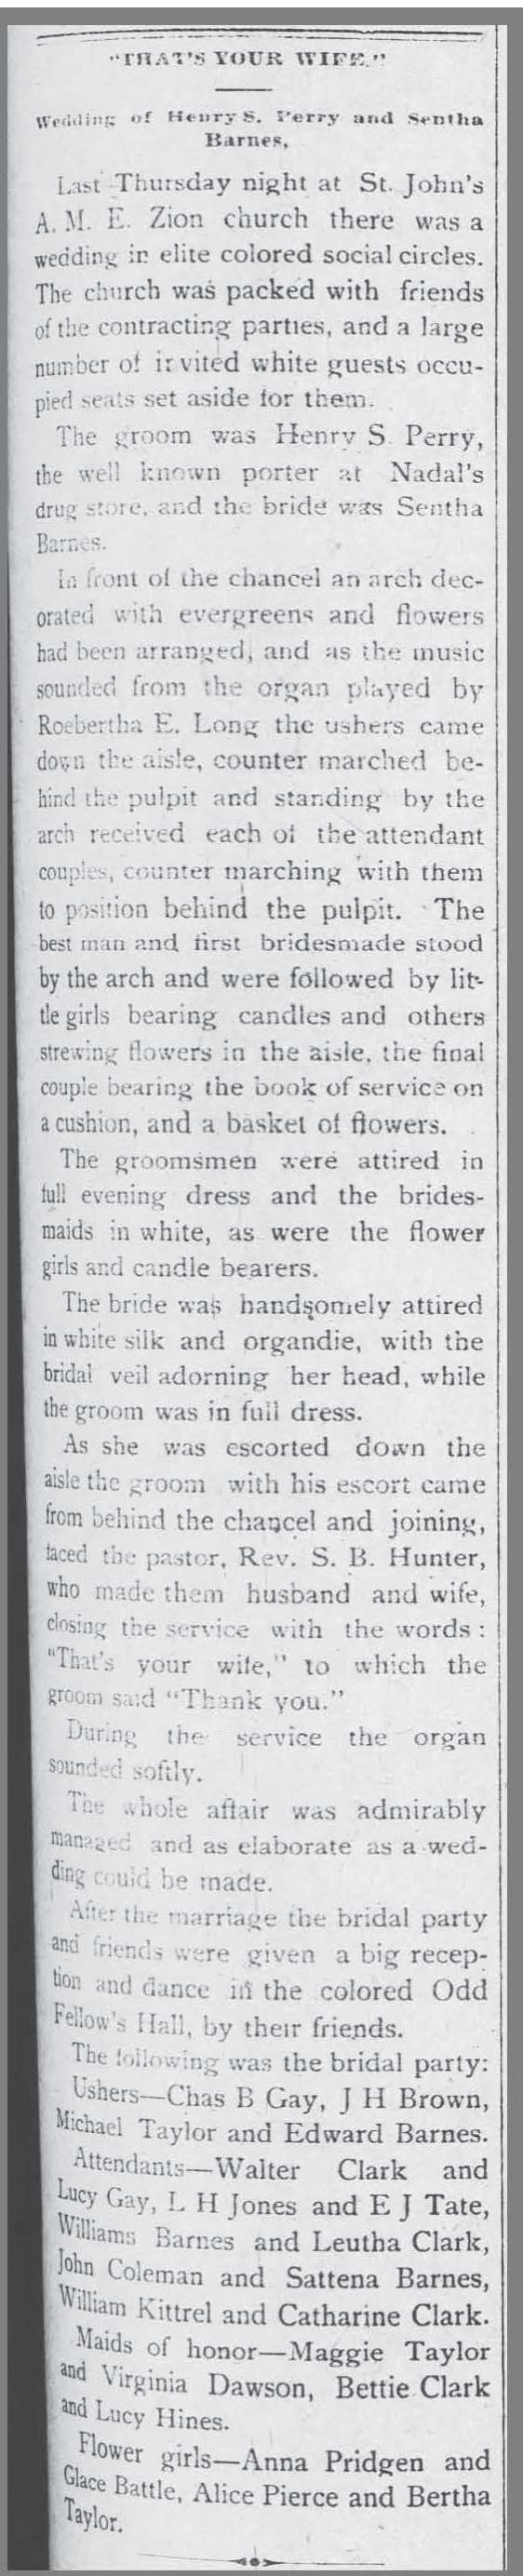 Wilson_News_9_21_1899_wedding